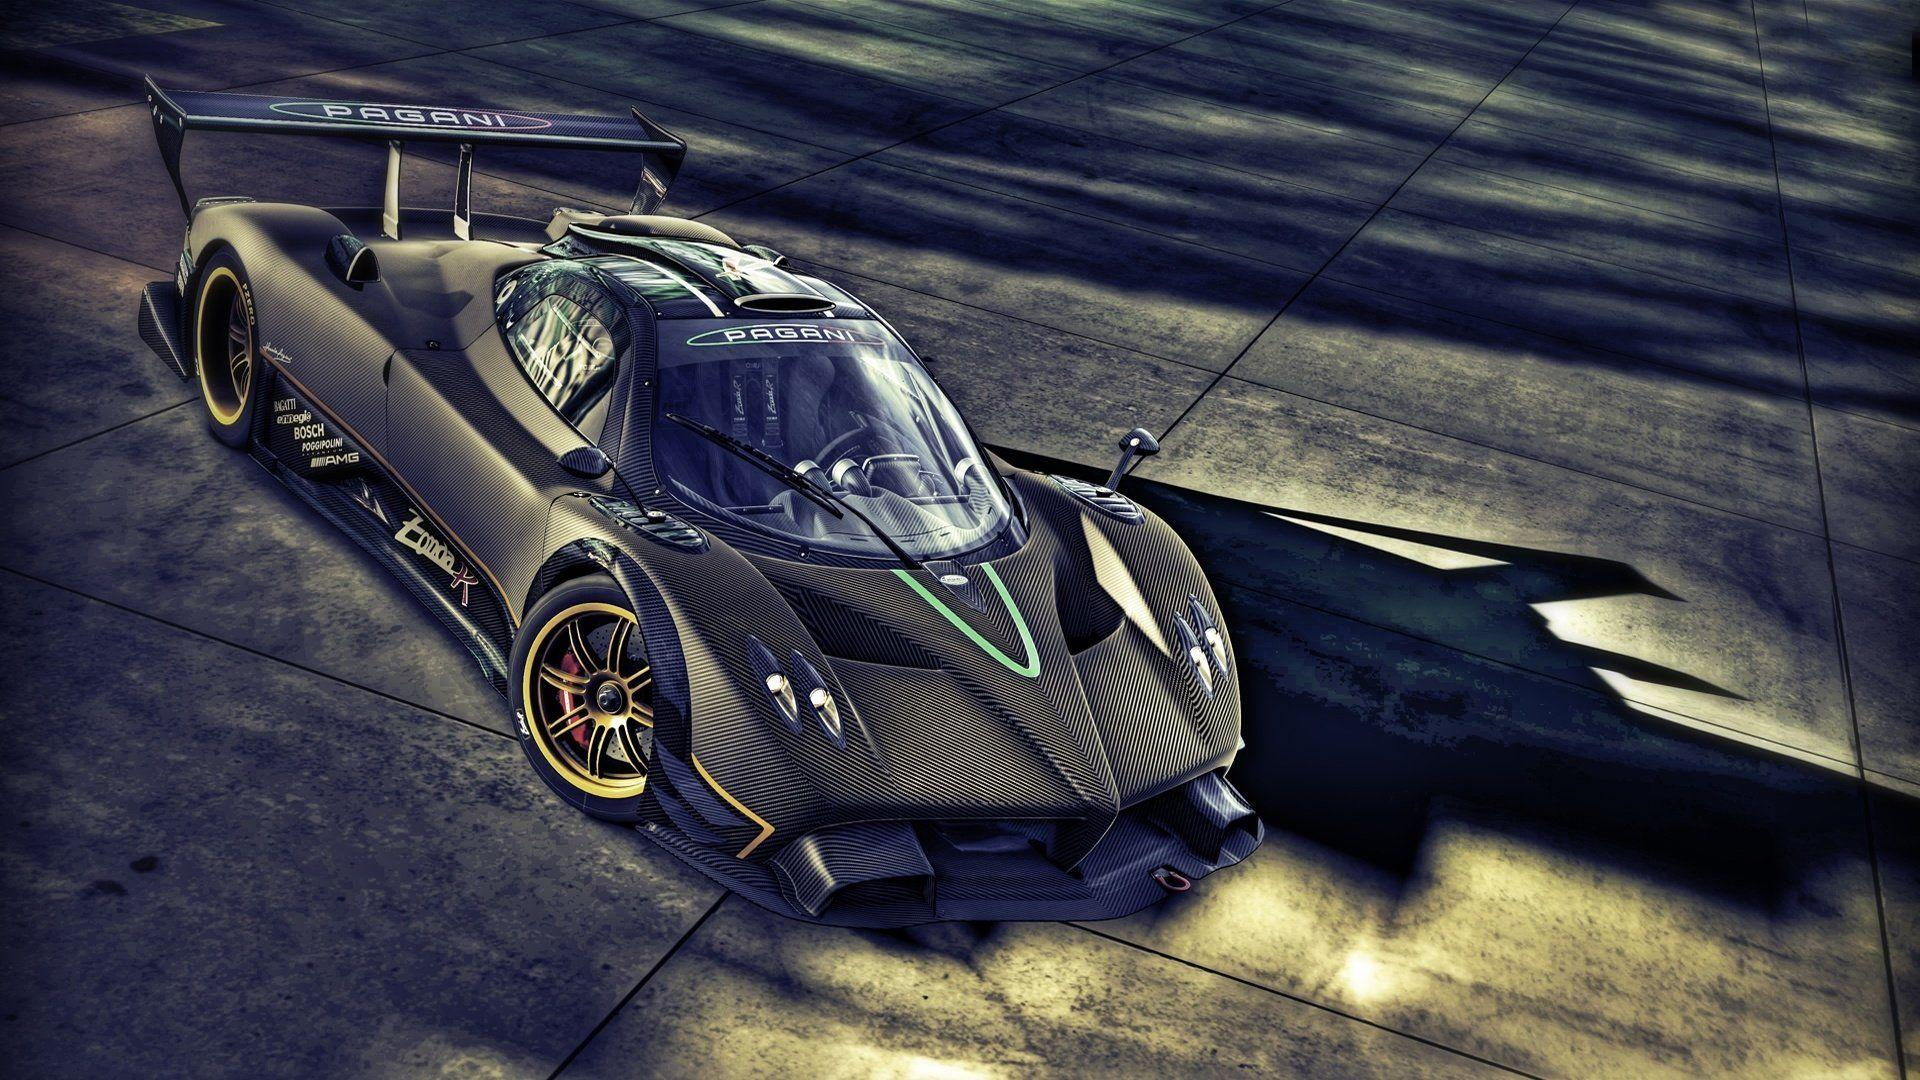 11 Pagani Zonda R HD Wallpapers | Backgrounds - Wallpaper Abyss